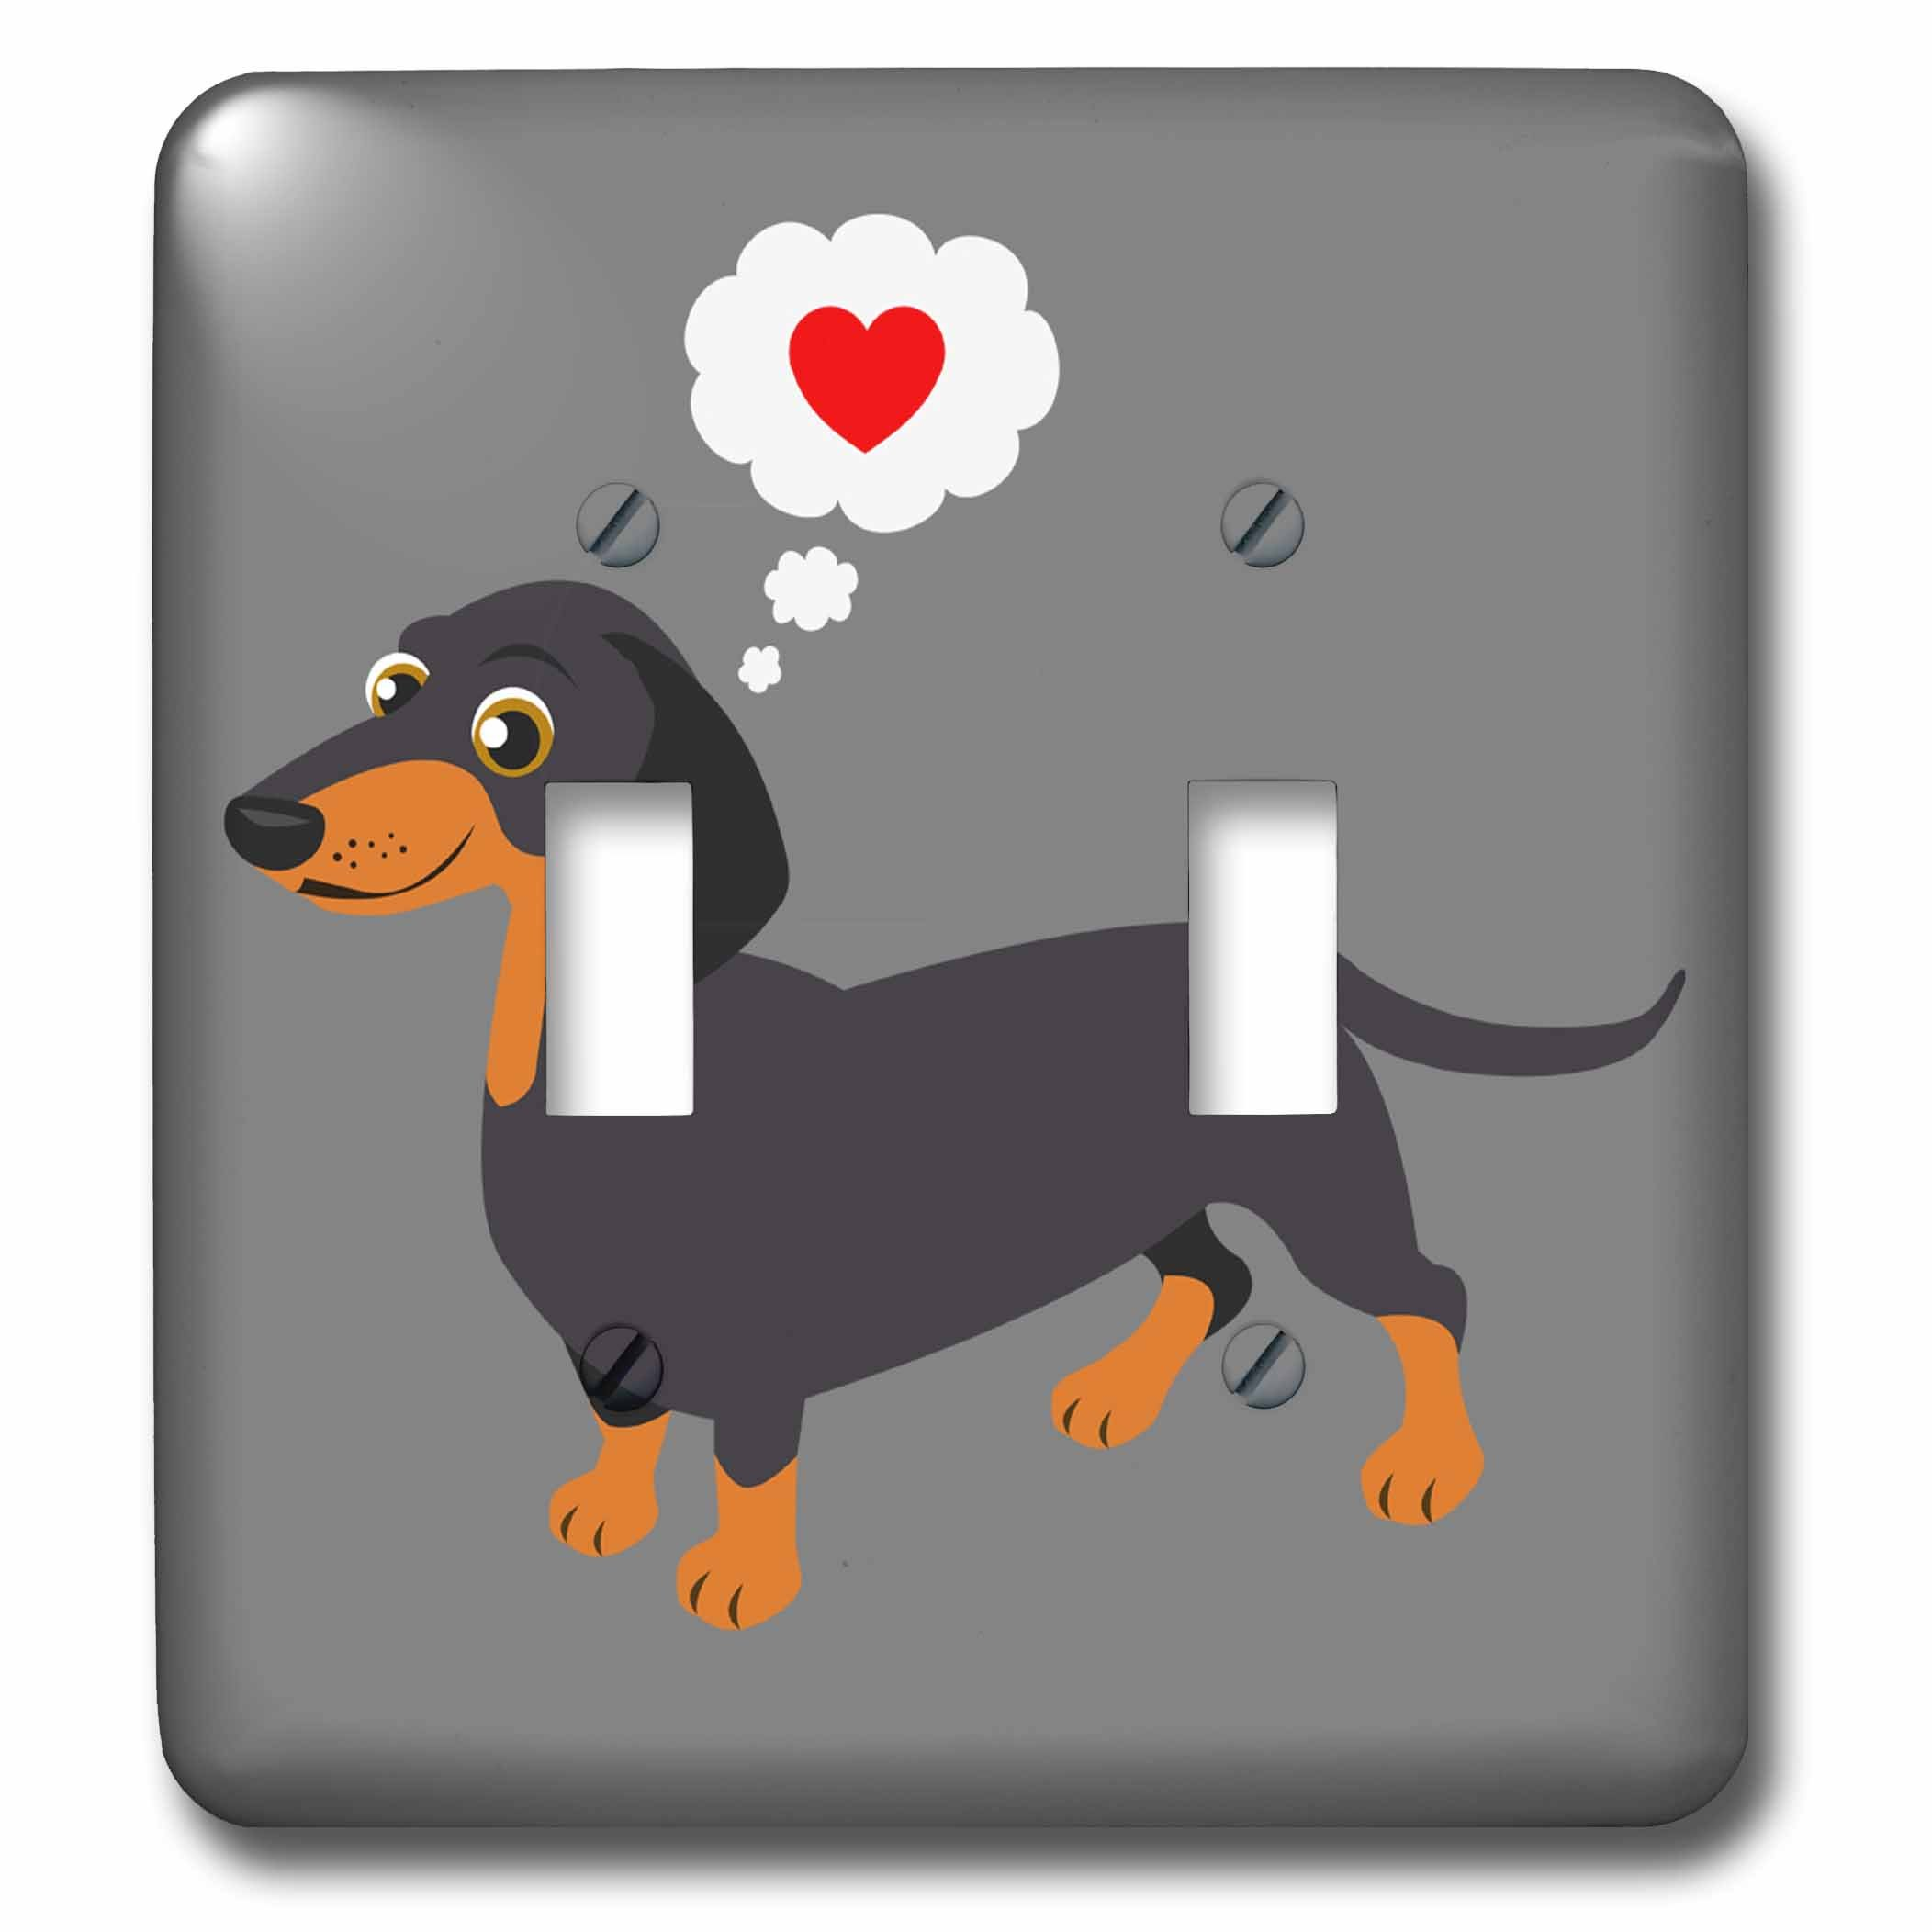 3dRose Janna Salak Designs Dogs - Dachshund Loves You Black and Tan Doxie - Light Switch Covers - double toggle switch (lsp_283623_2)